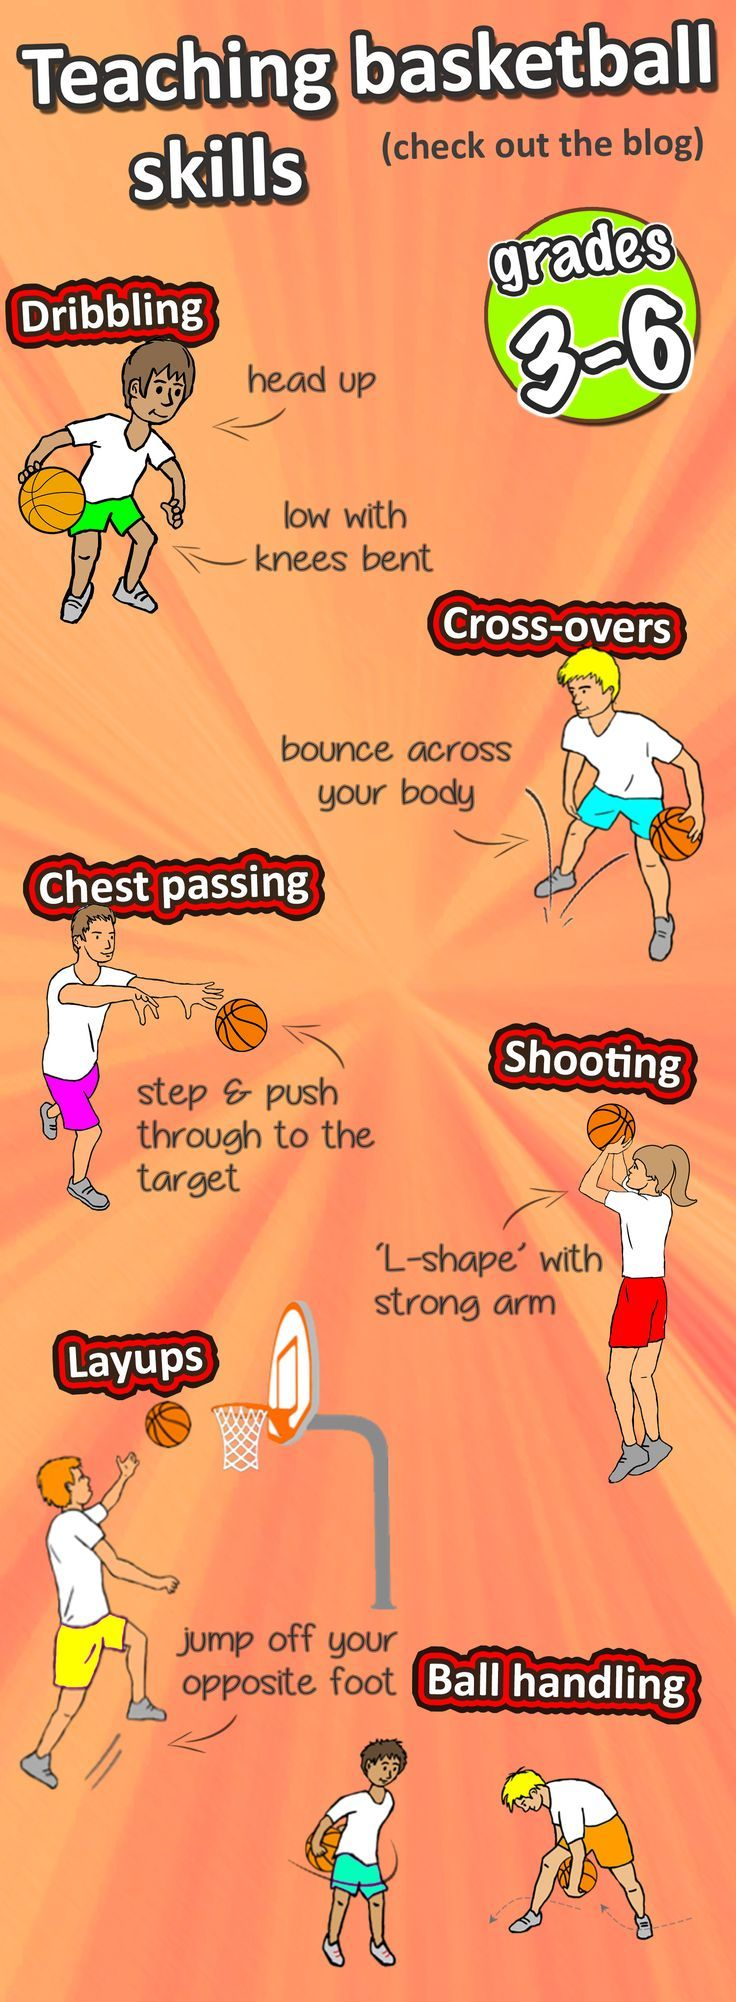 How To Teach The Essential Basketball Skills Basketball Drills Basketball Workouts Basketball Skills